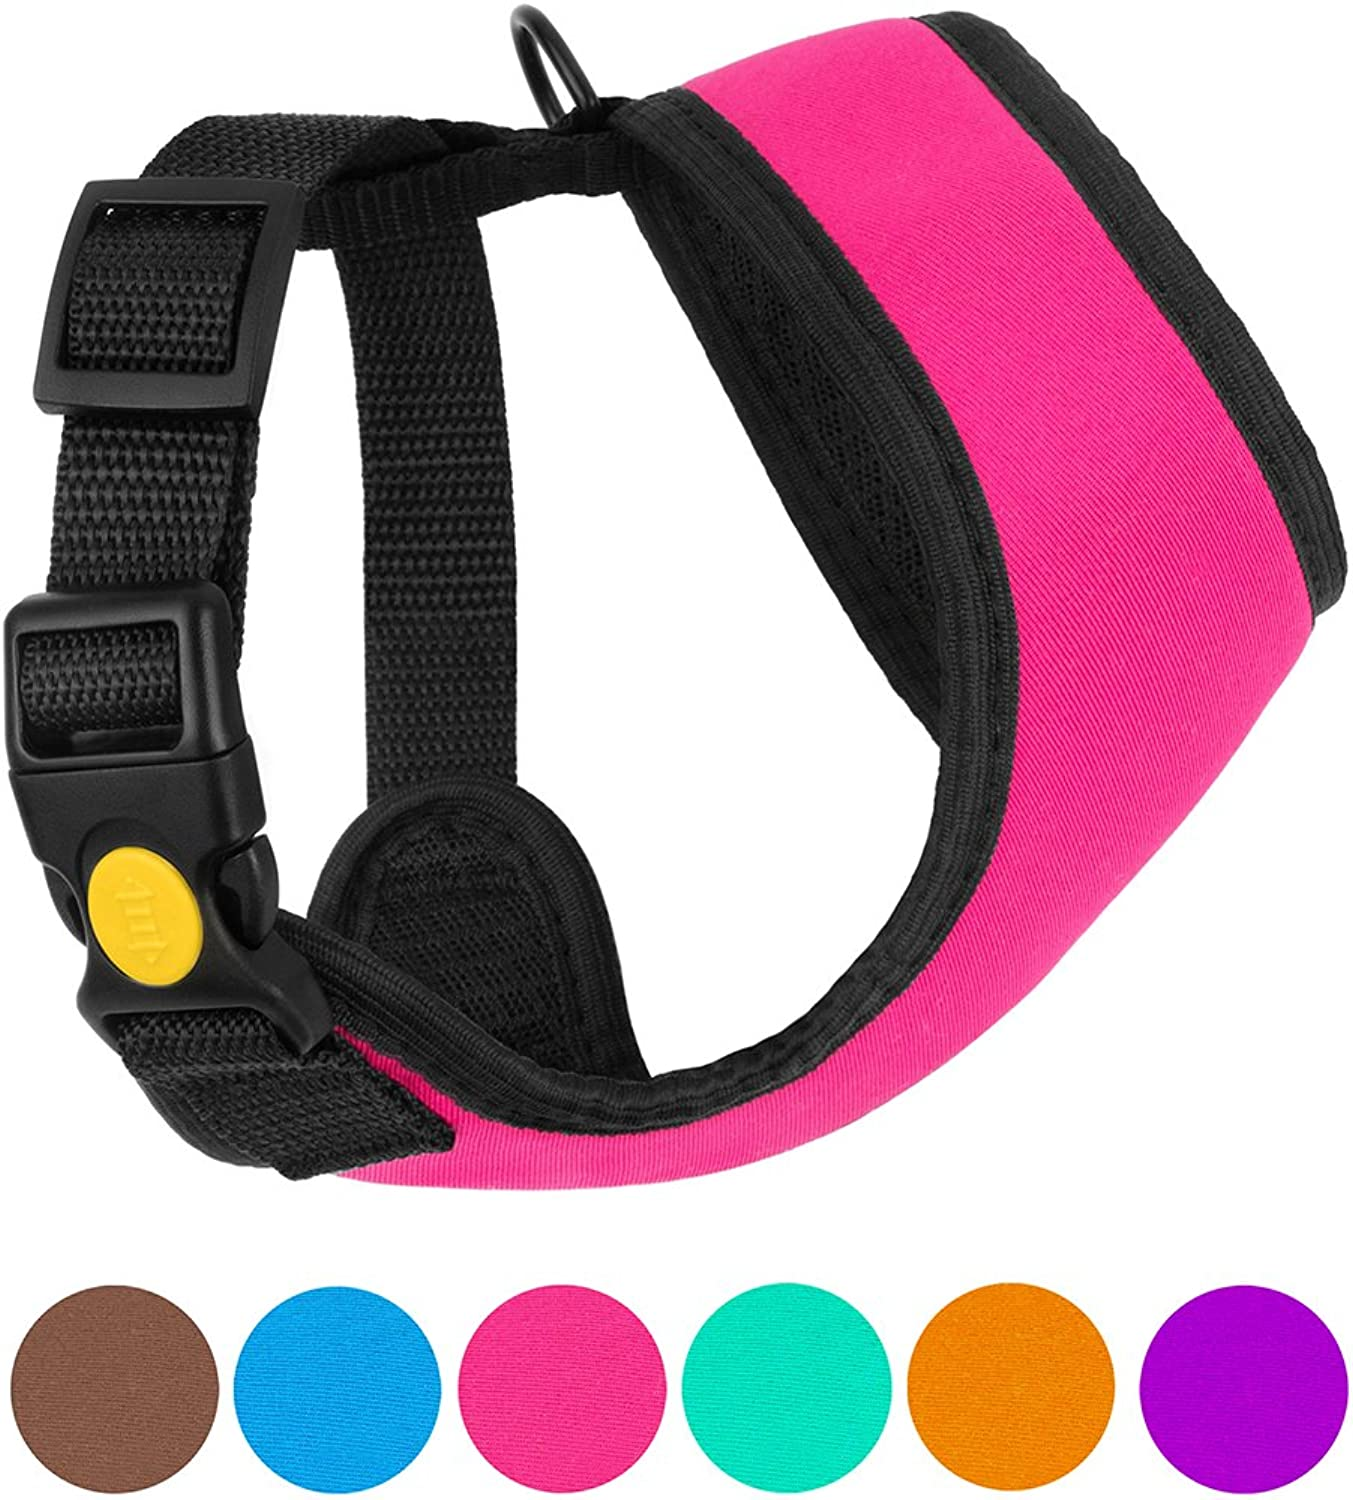 CollarDirect Soft Mesh Dog Harness Small Neoprene Puppy Padded Vest Adjustable Outdoor Pet Harnesses for Small Medium Dogs Pink bluee Purple orange (XS, Pink)